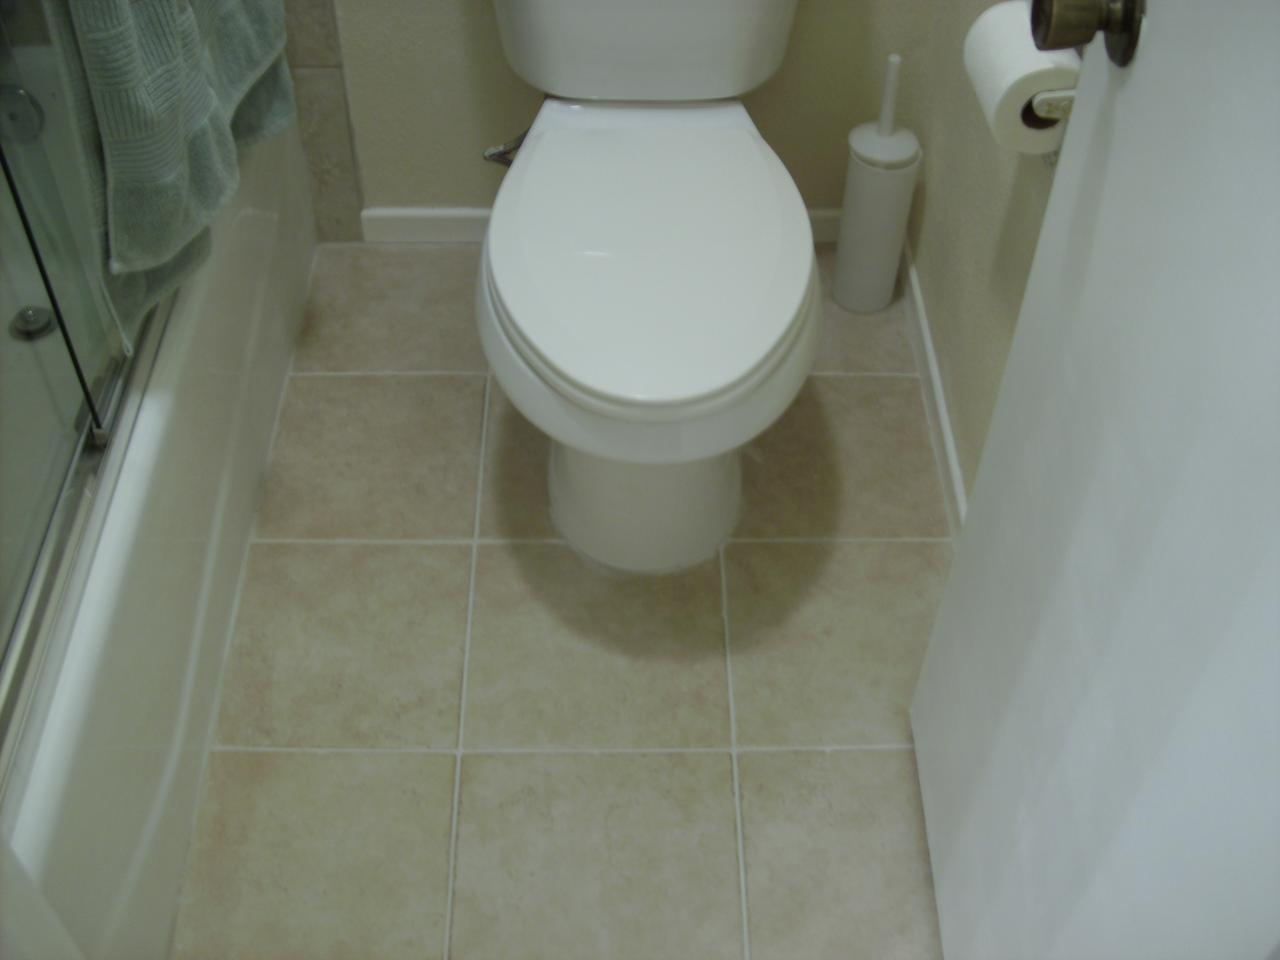 New Drywall, Texture, Paint And Floor Molding Was Installed. The Original  Toilet Was Replaced With An Elongated Super Flush And ...